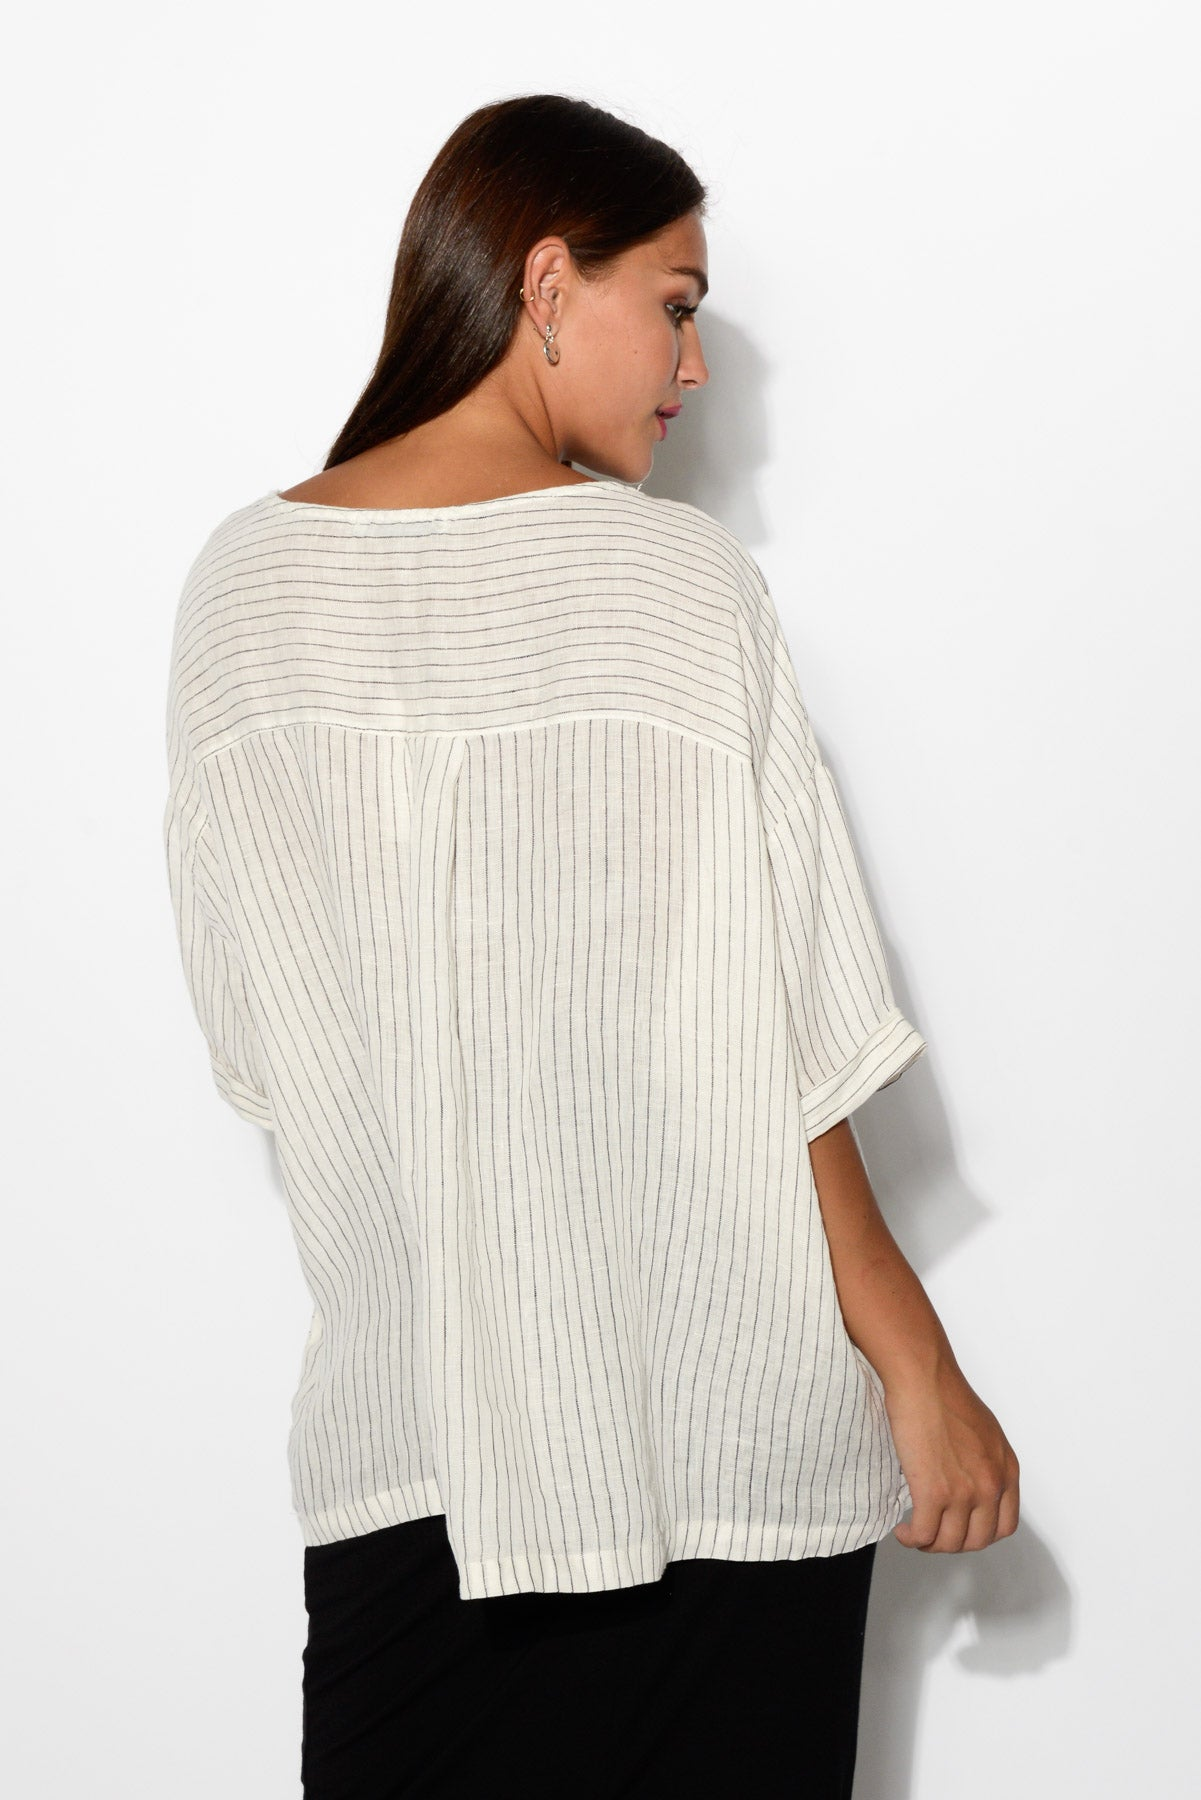 Lou White Striped Linen Top - Blue Bungalow